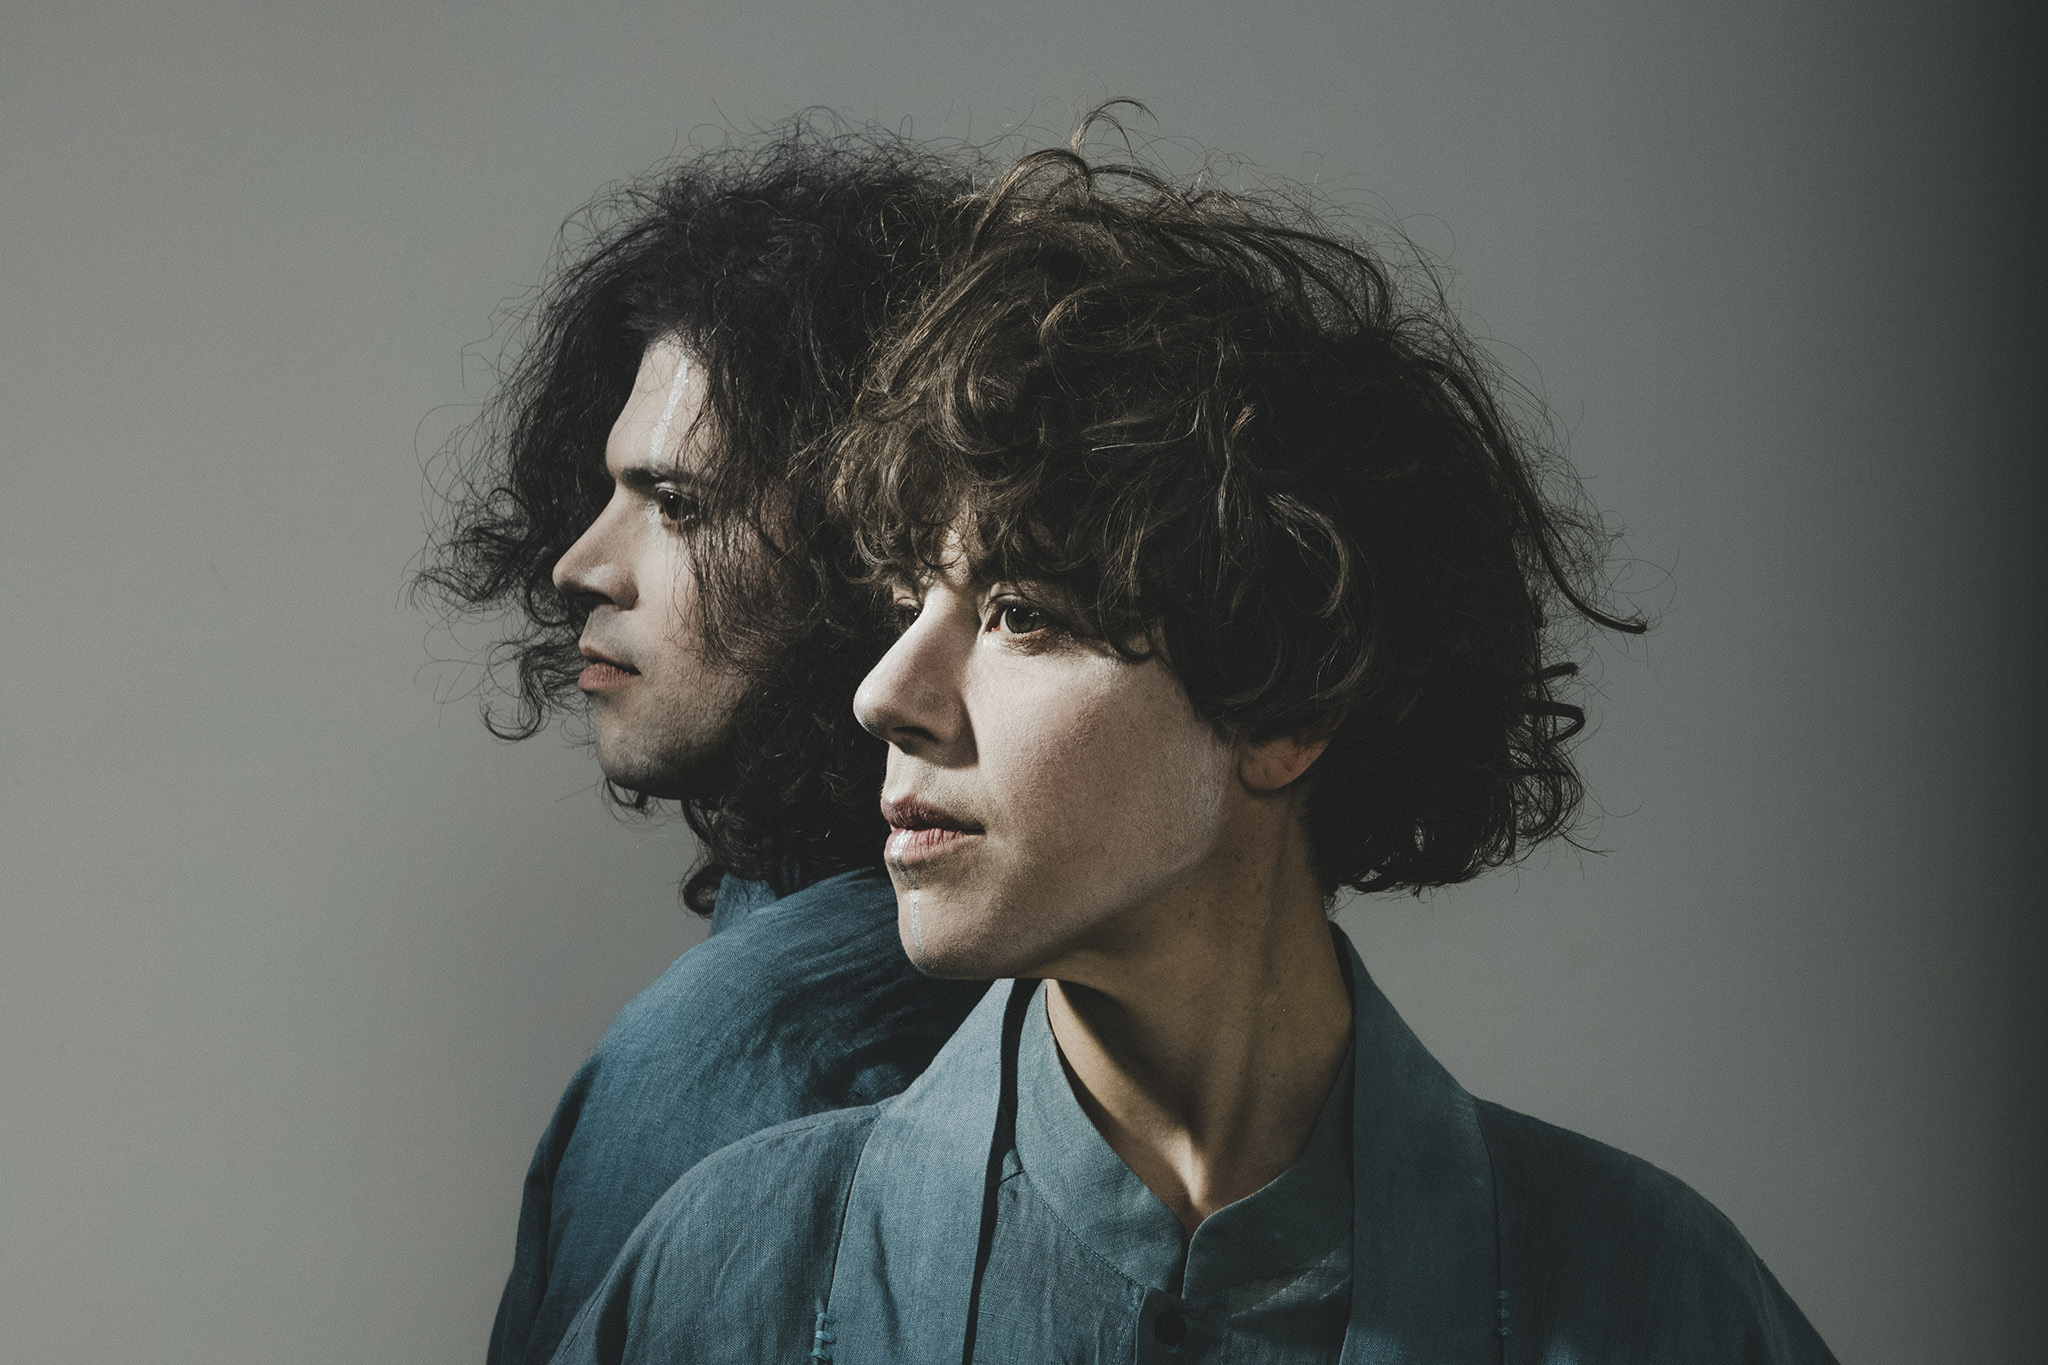 Tune-Yards + Shabazz Palaces